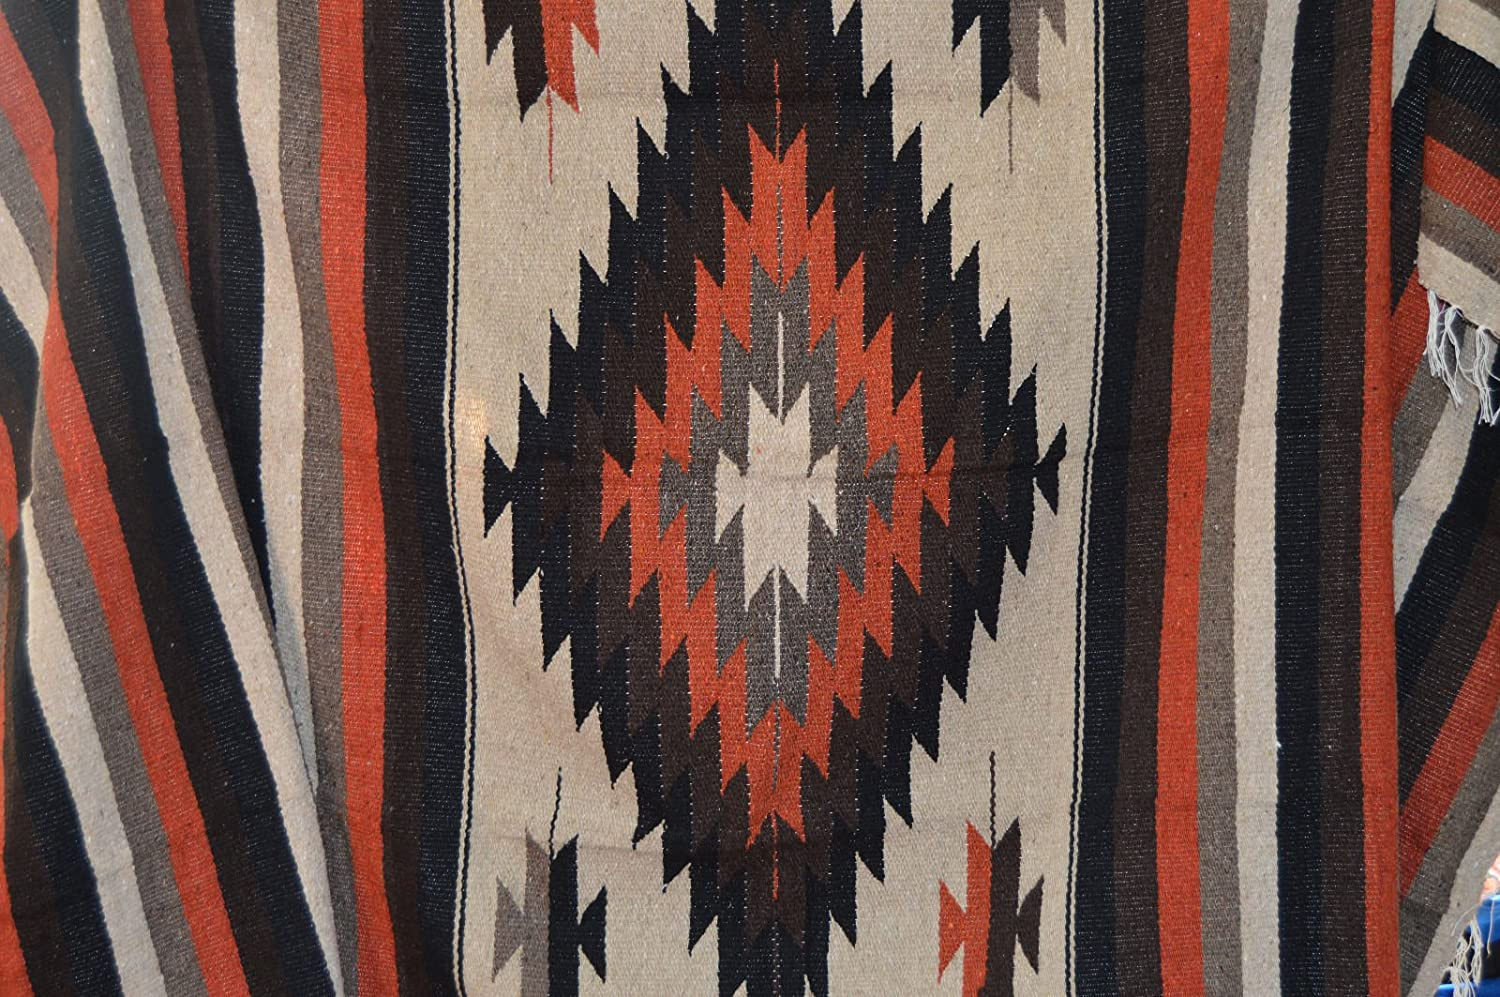 Galaxy Reborn Mexican Blanket Tribal Diamond Burnt Umbre 80 x 48 Authentic Premium XLarge Handwoven Southwestern Throw Serape Yoga Rug